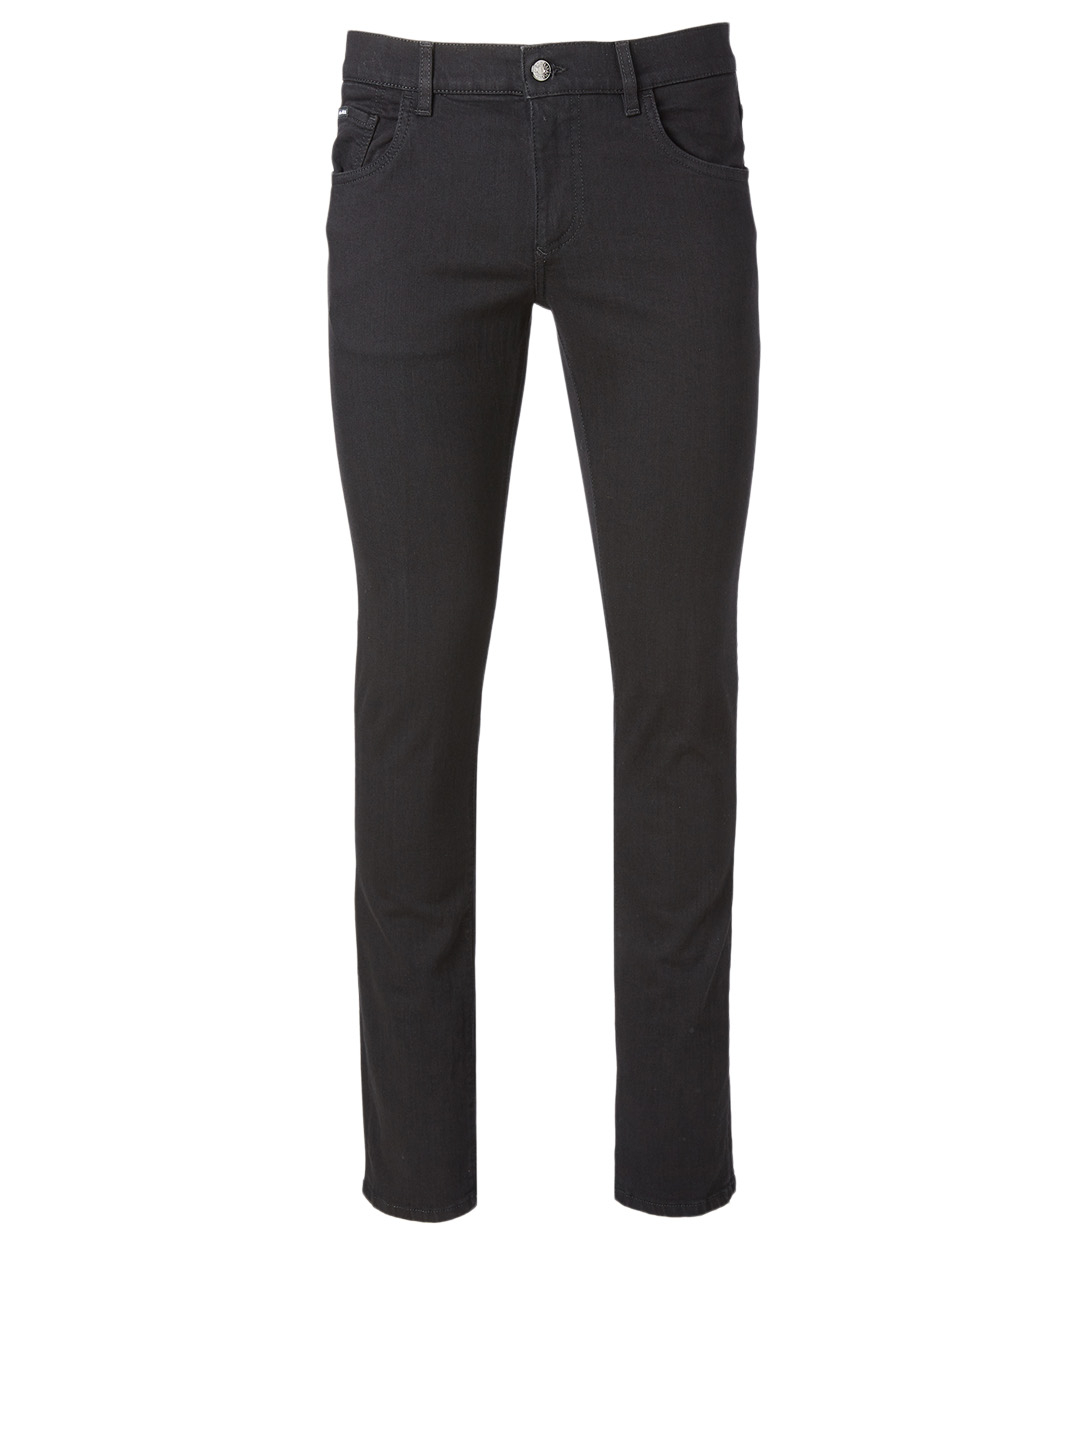 DOLCE & GABBANA Cotton Stretch Jeans With Logo Patch Men's Black